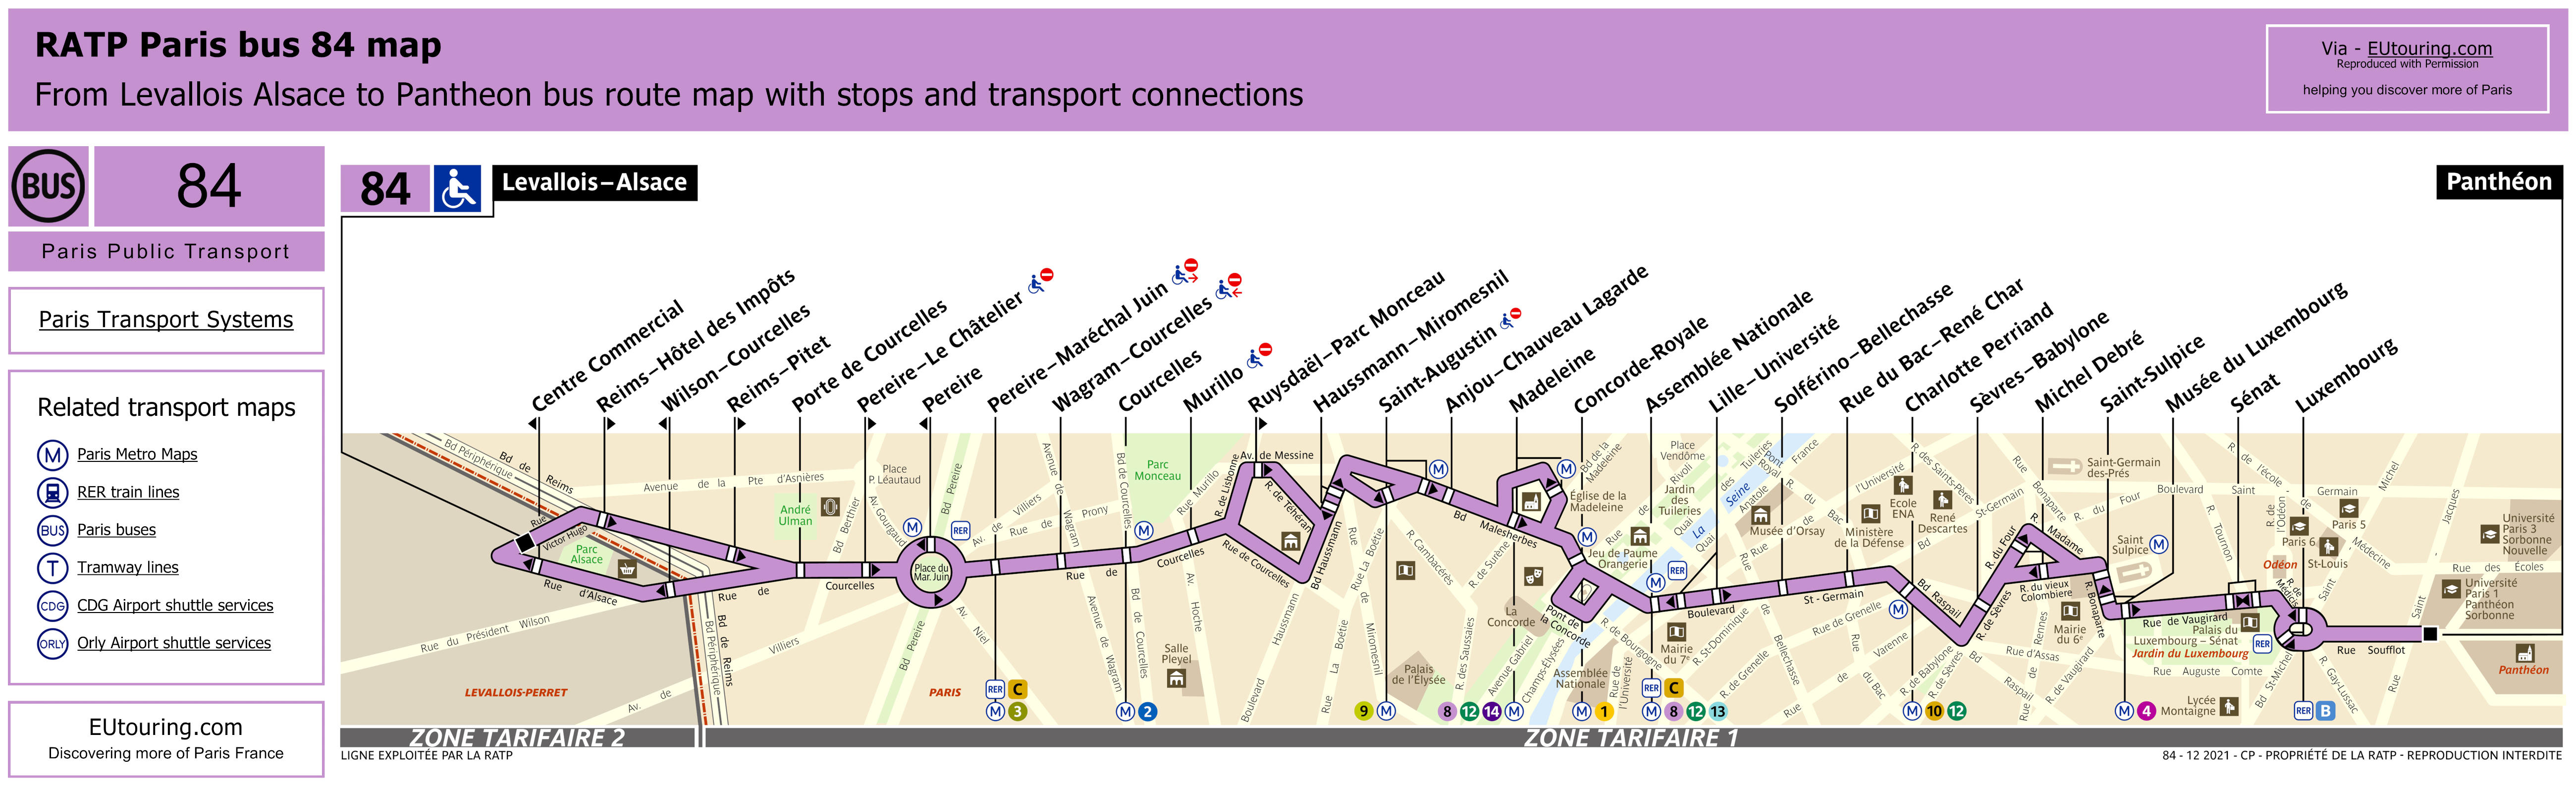 ratp route maps for paris bus lines 80 through to 89